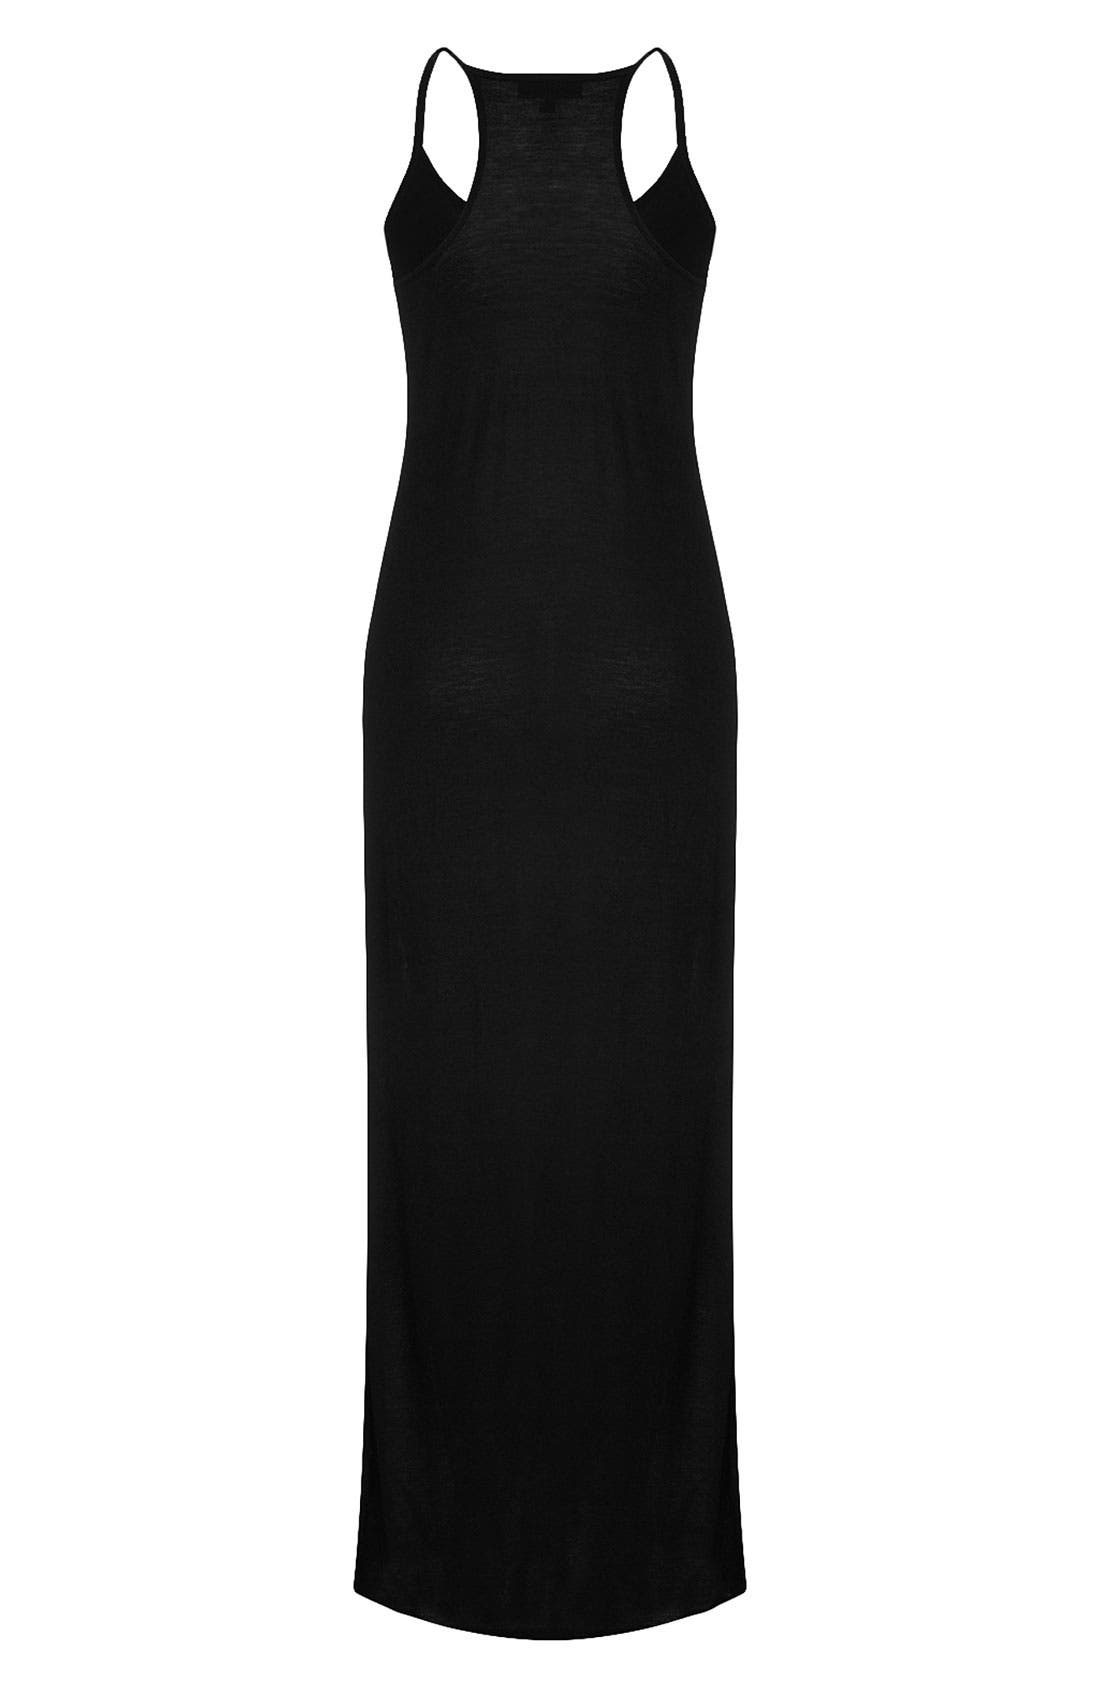 Main Image - Topshop Cami Strap Maxi Dress